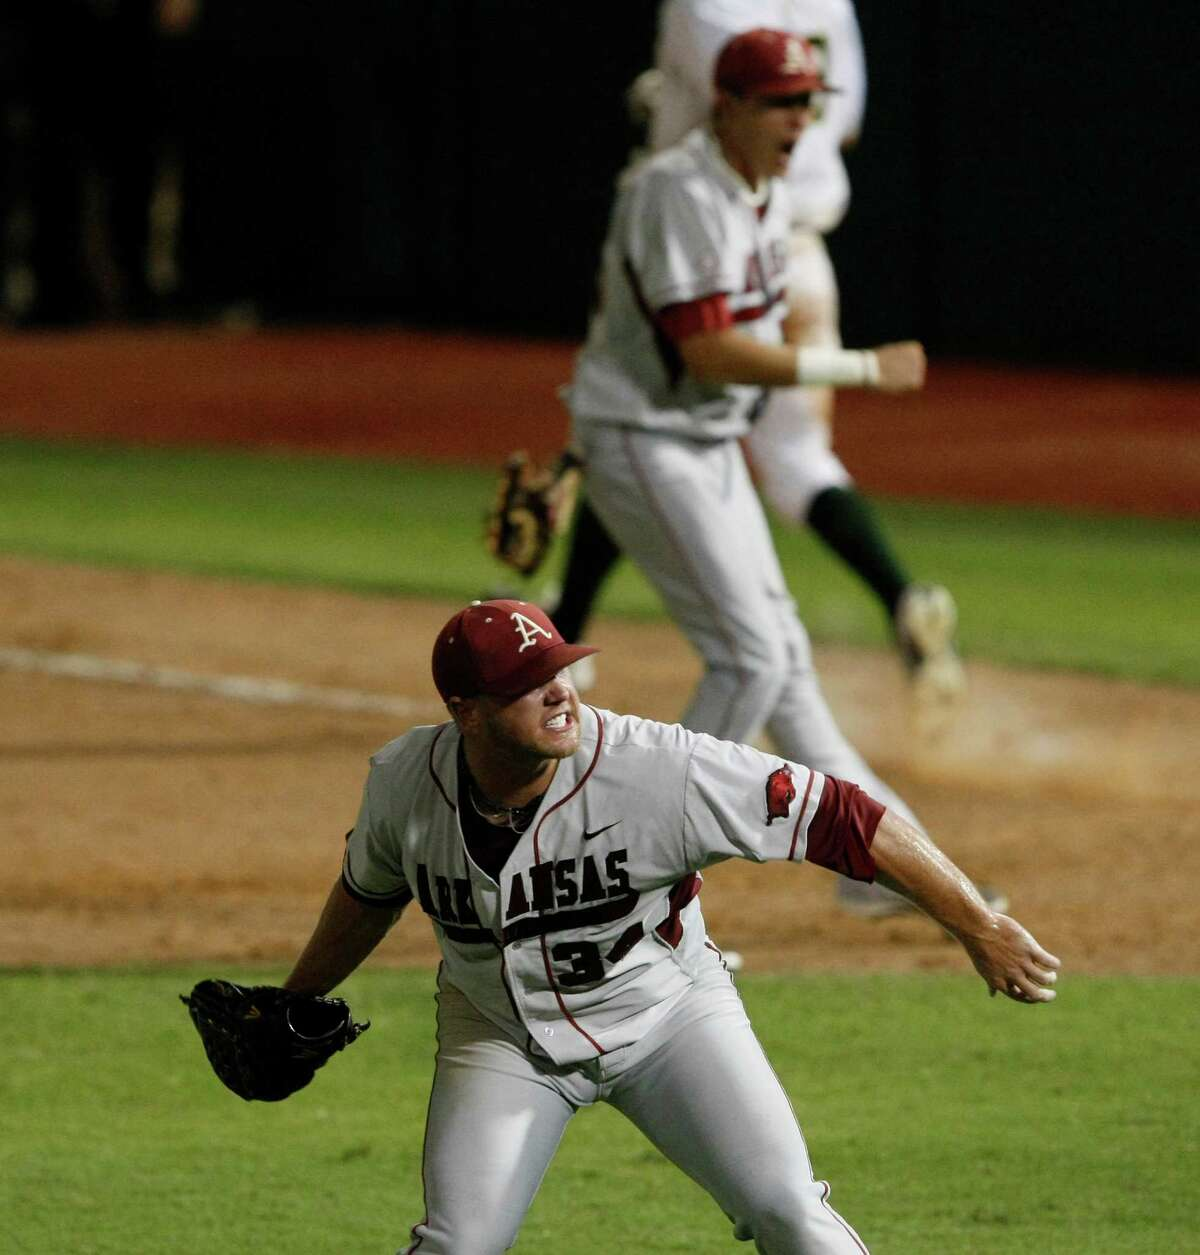 Arkansas relief pitcher Colby Suggs (34) throw up his glove after defeating Baylor 1-0 during an NCAA college baseball tournament super regional game, Monday, June 11, 2012, in Waco. Arkansas advances to the College World Series.